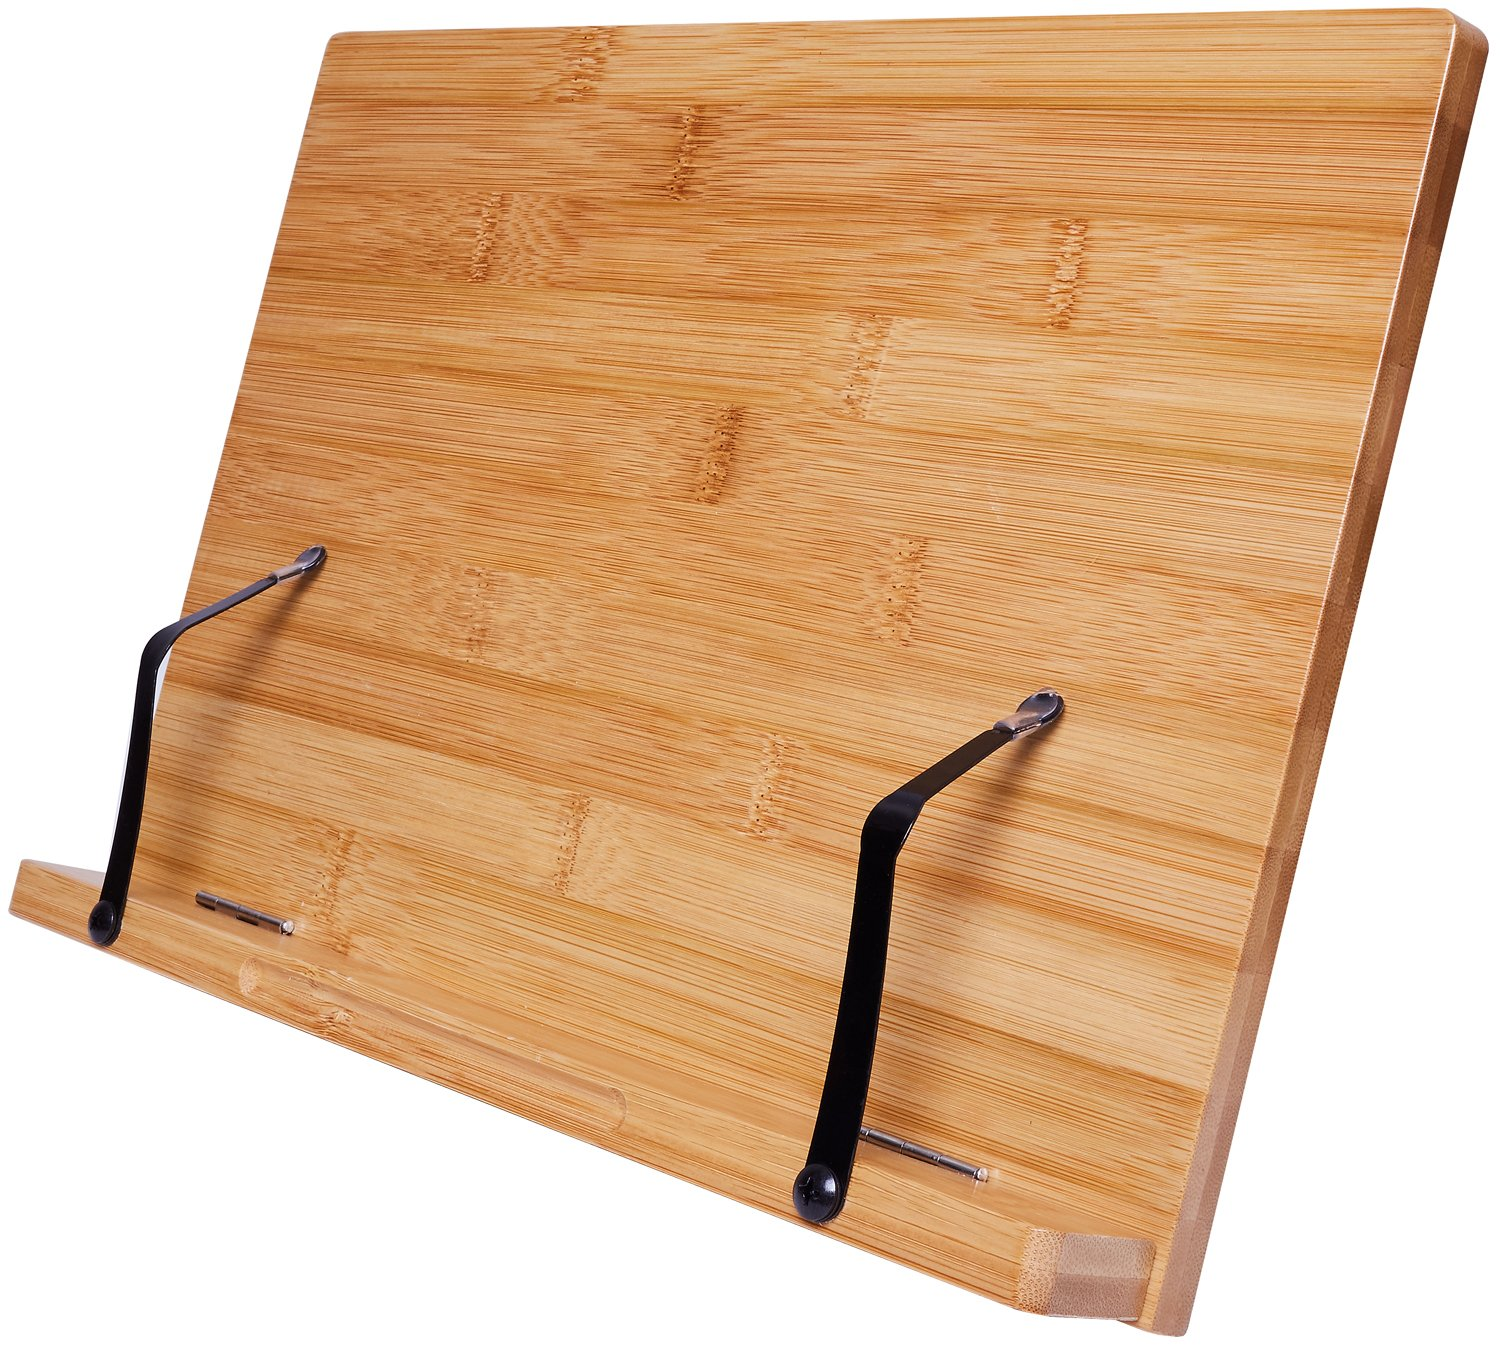 Bamboo Cookbook Stand By Harcas Holder For Books, Ipads, Tablets